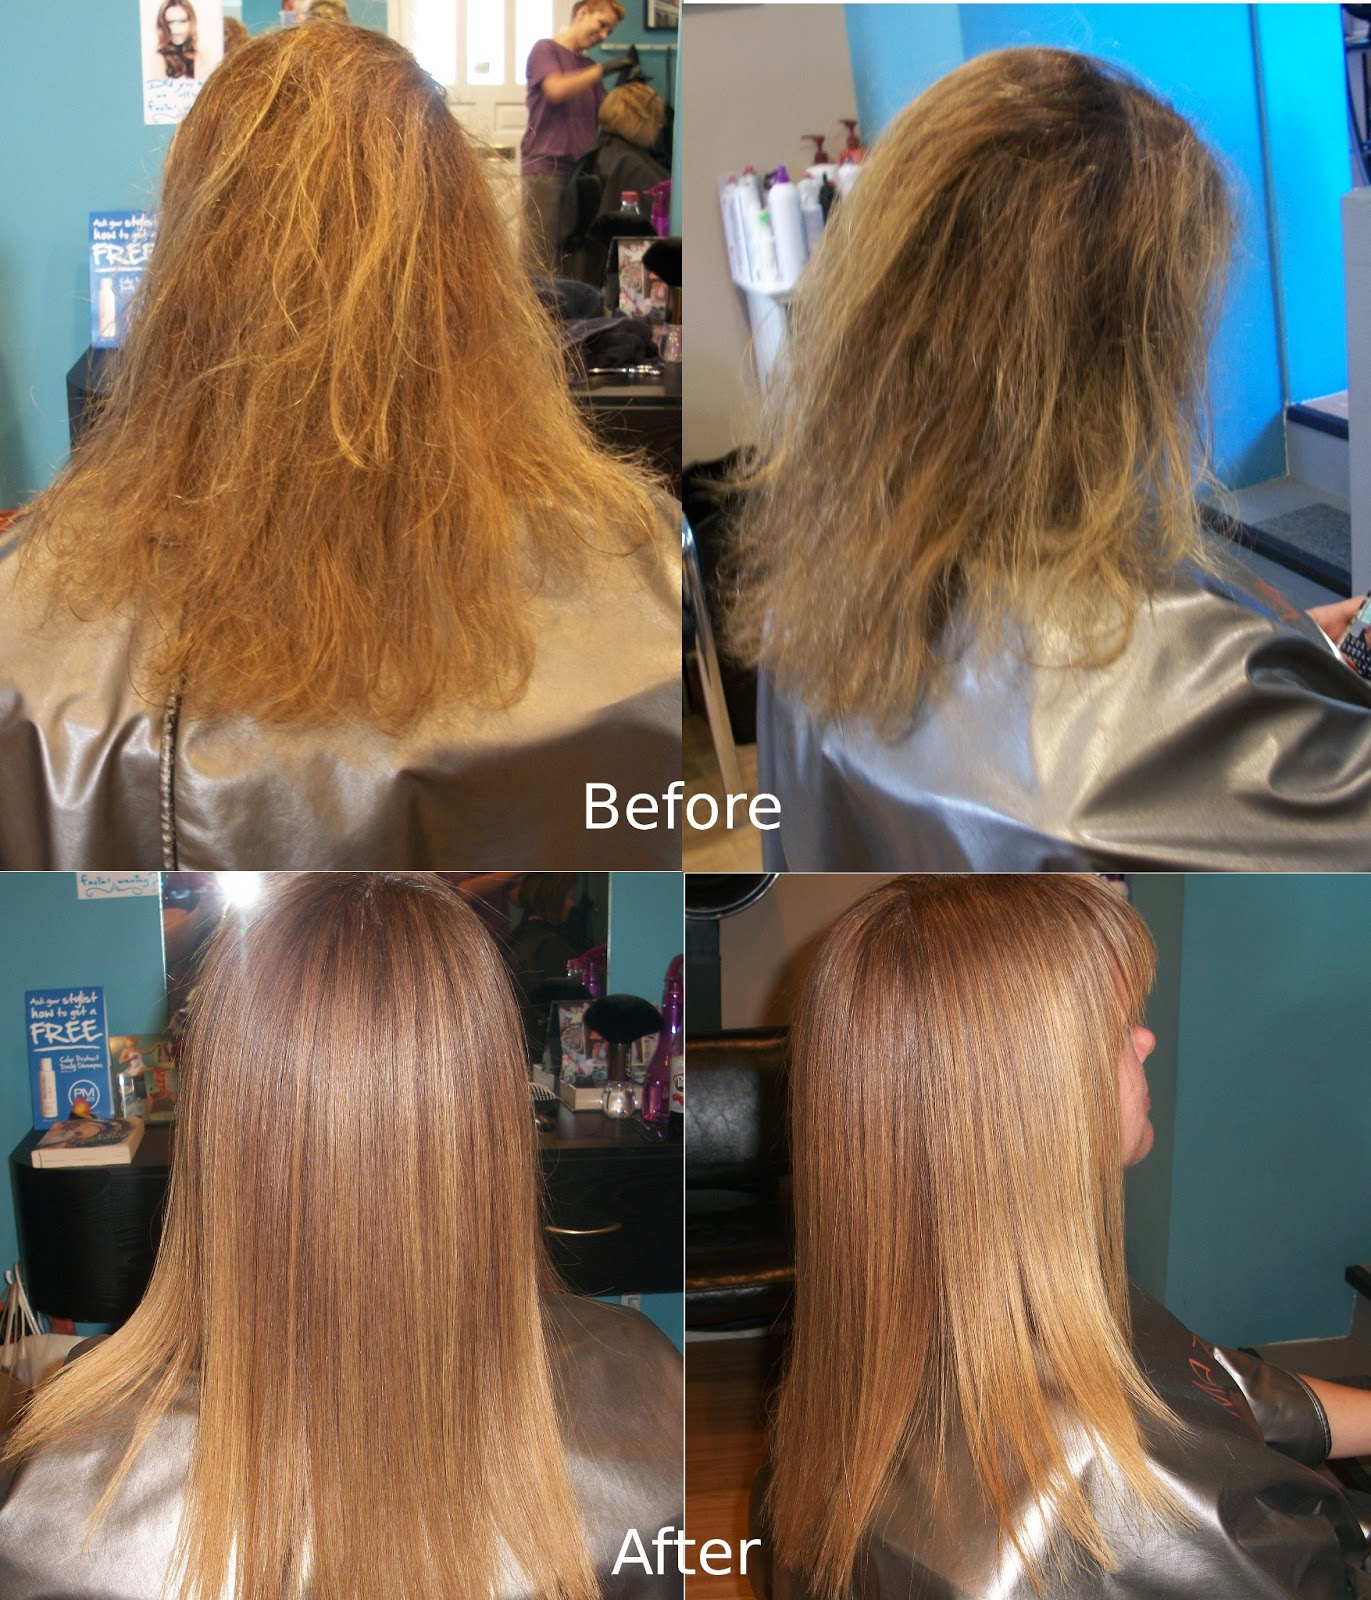 pravana keratin treatment instructions